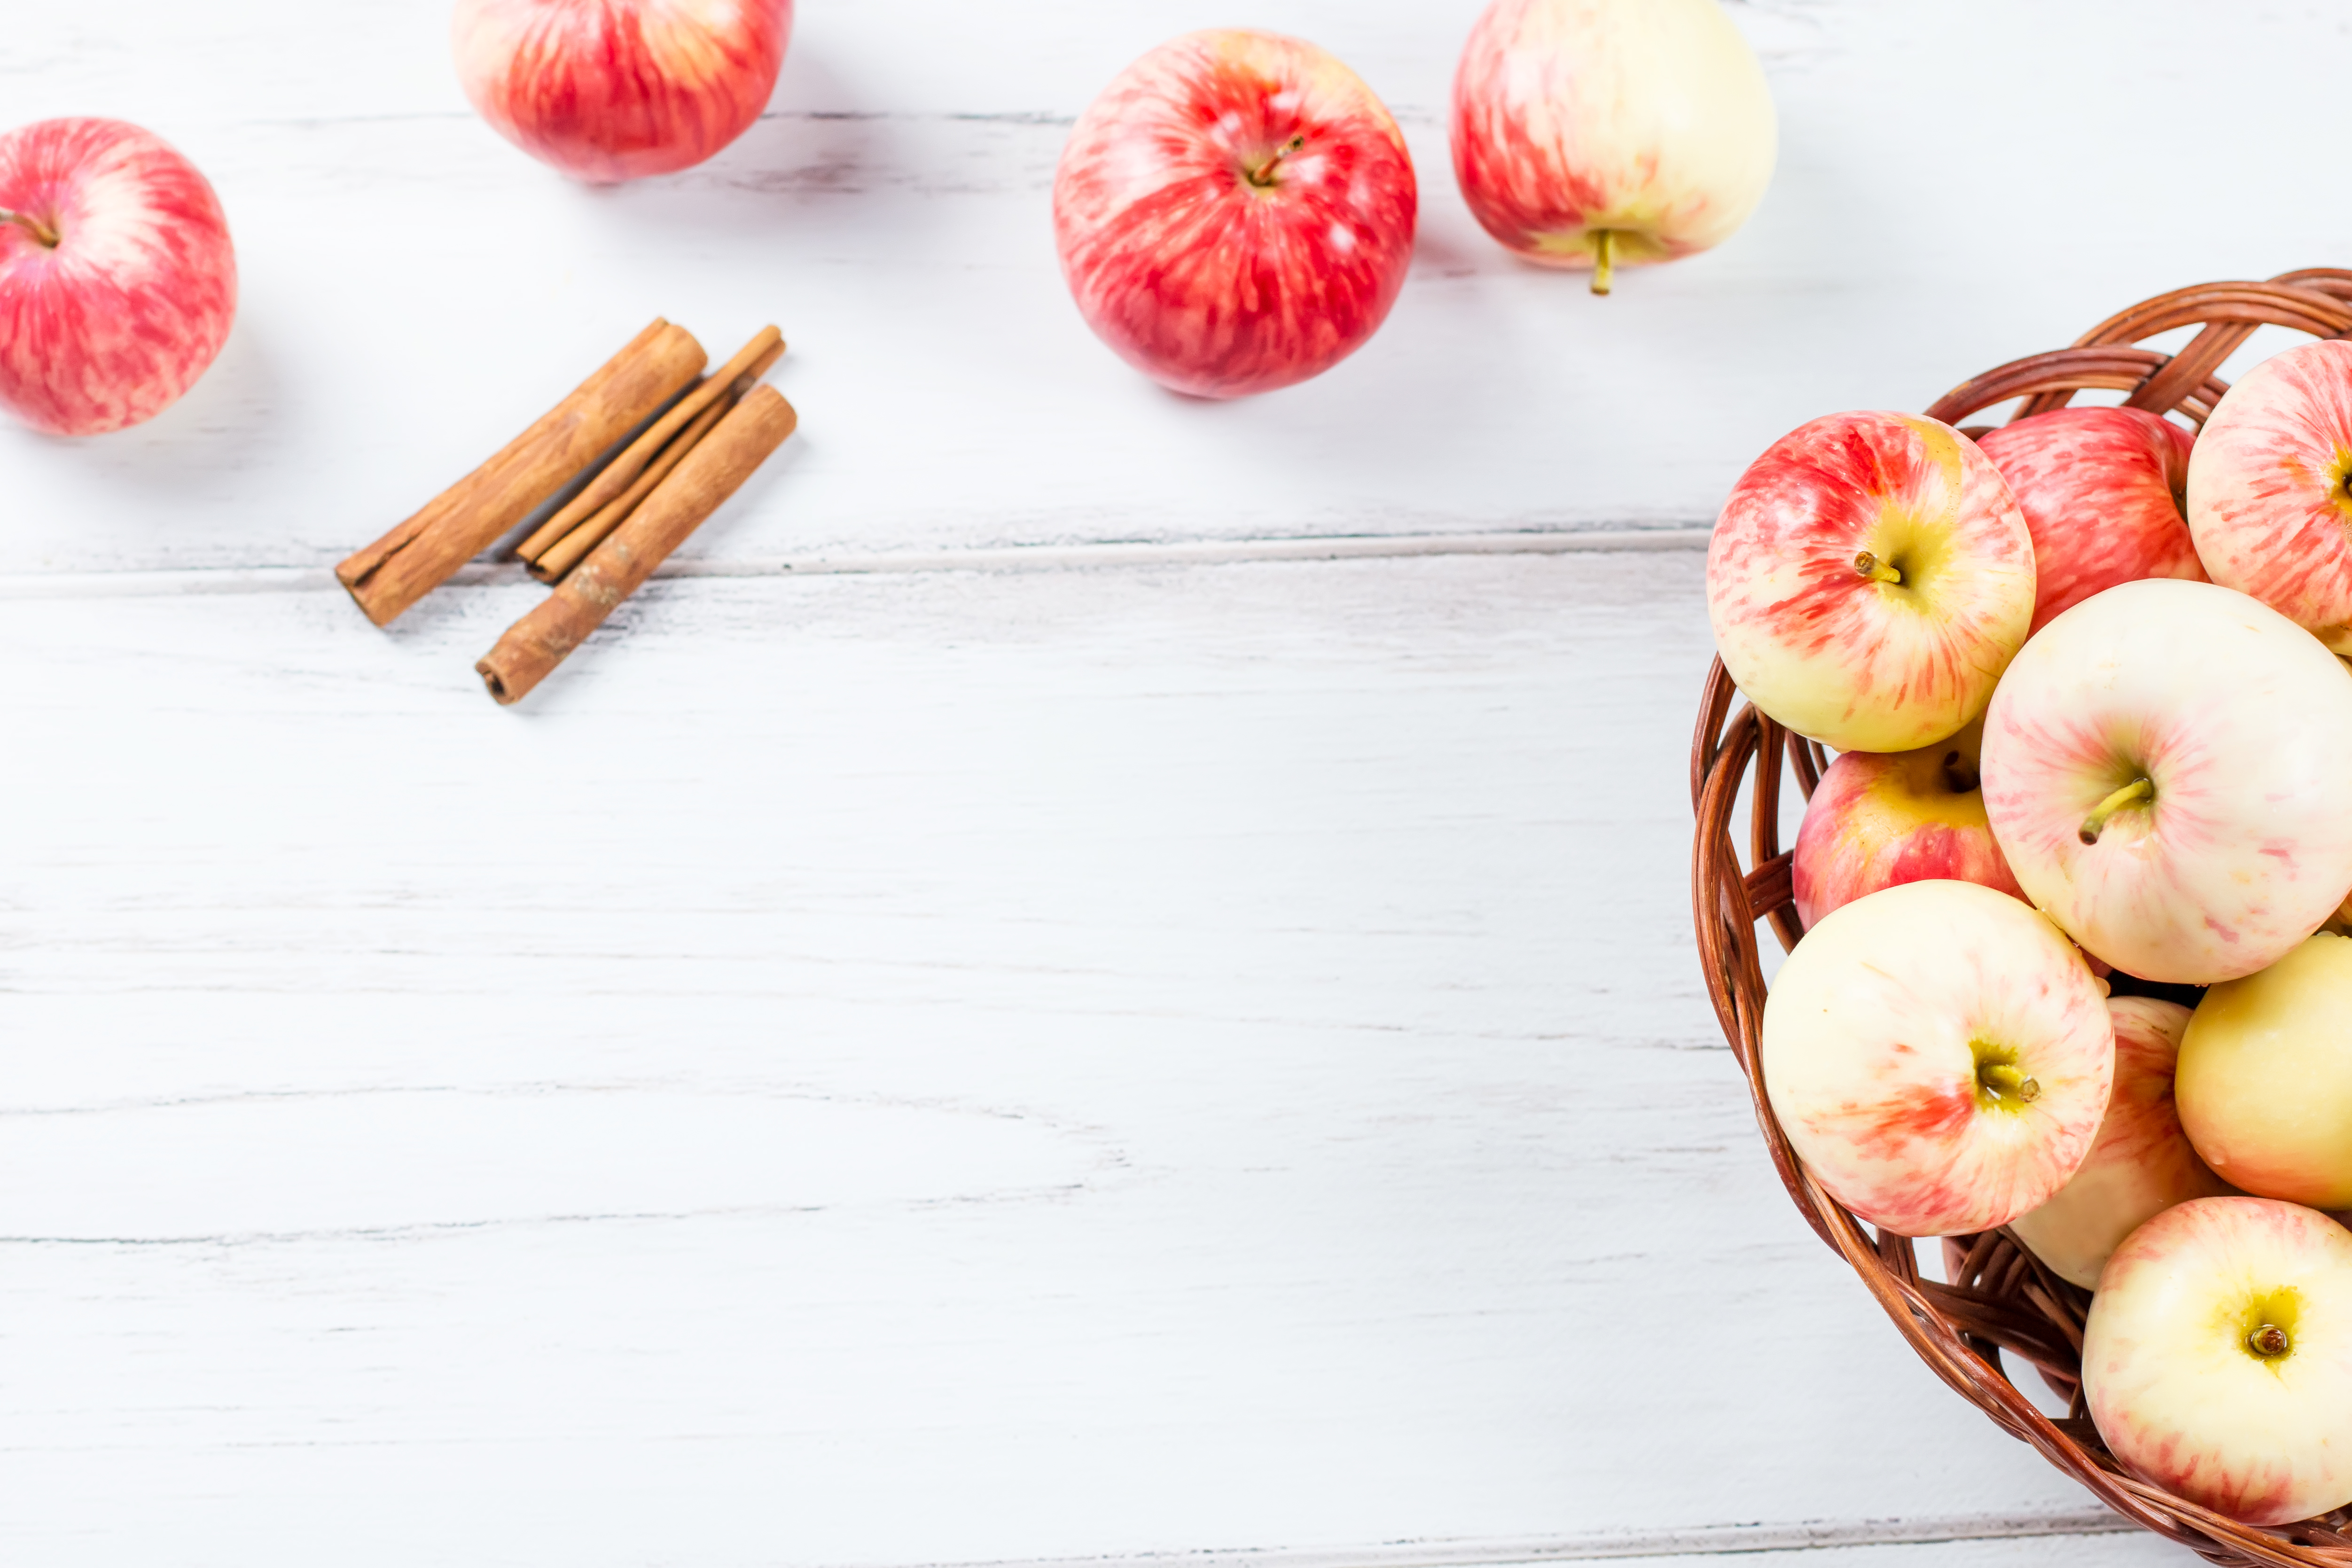 are apples good for keeping blood sugar steady? | healthy eating